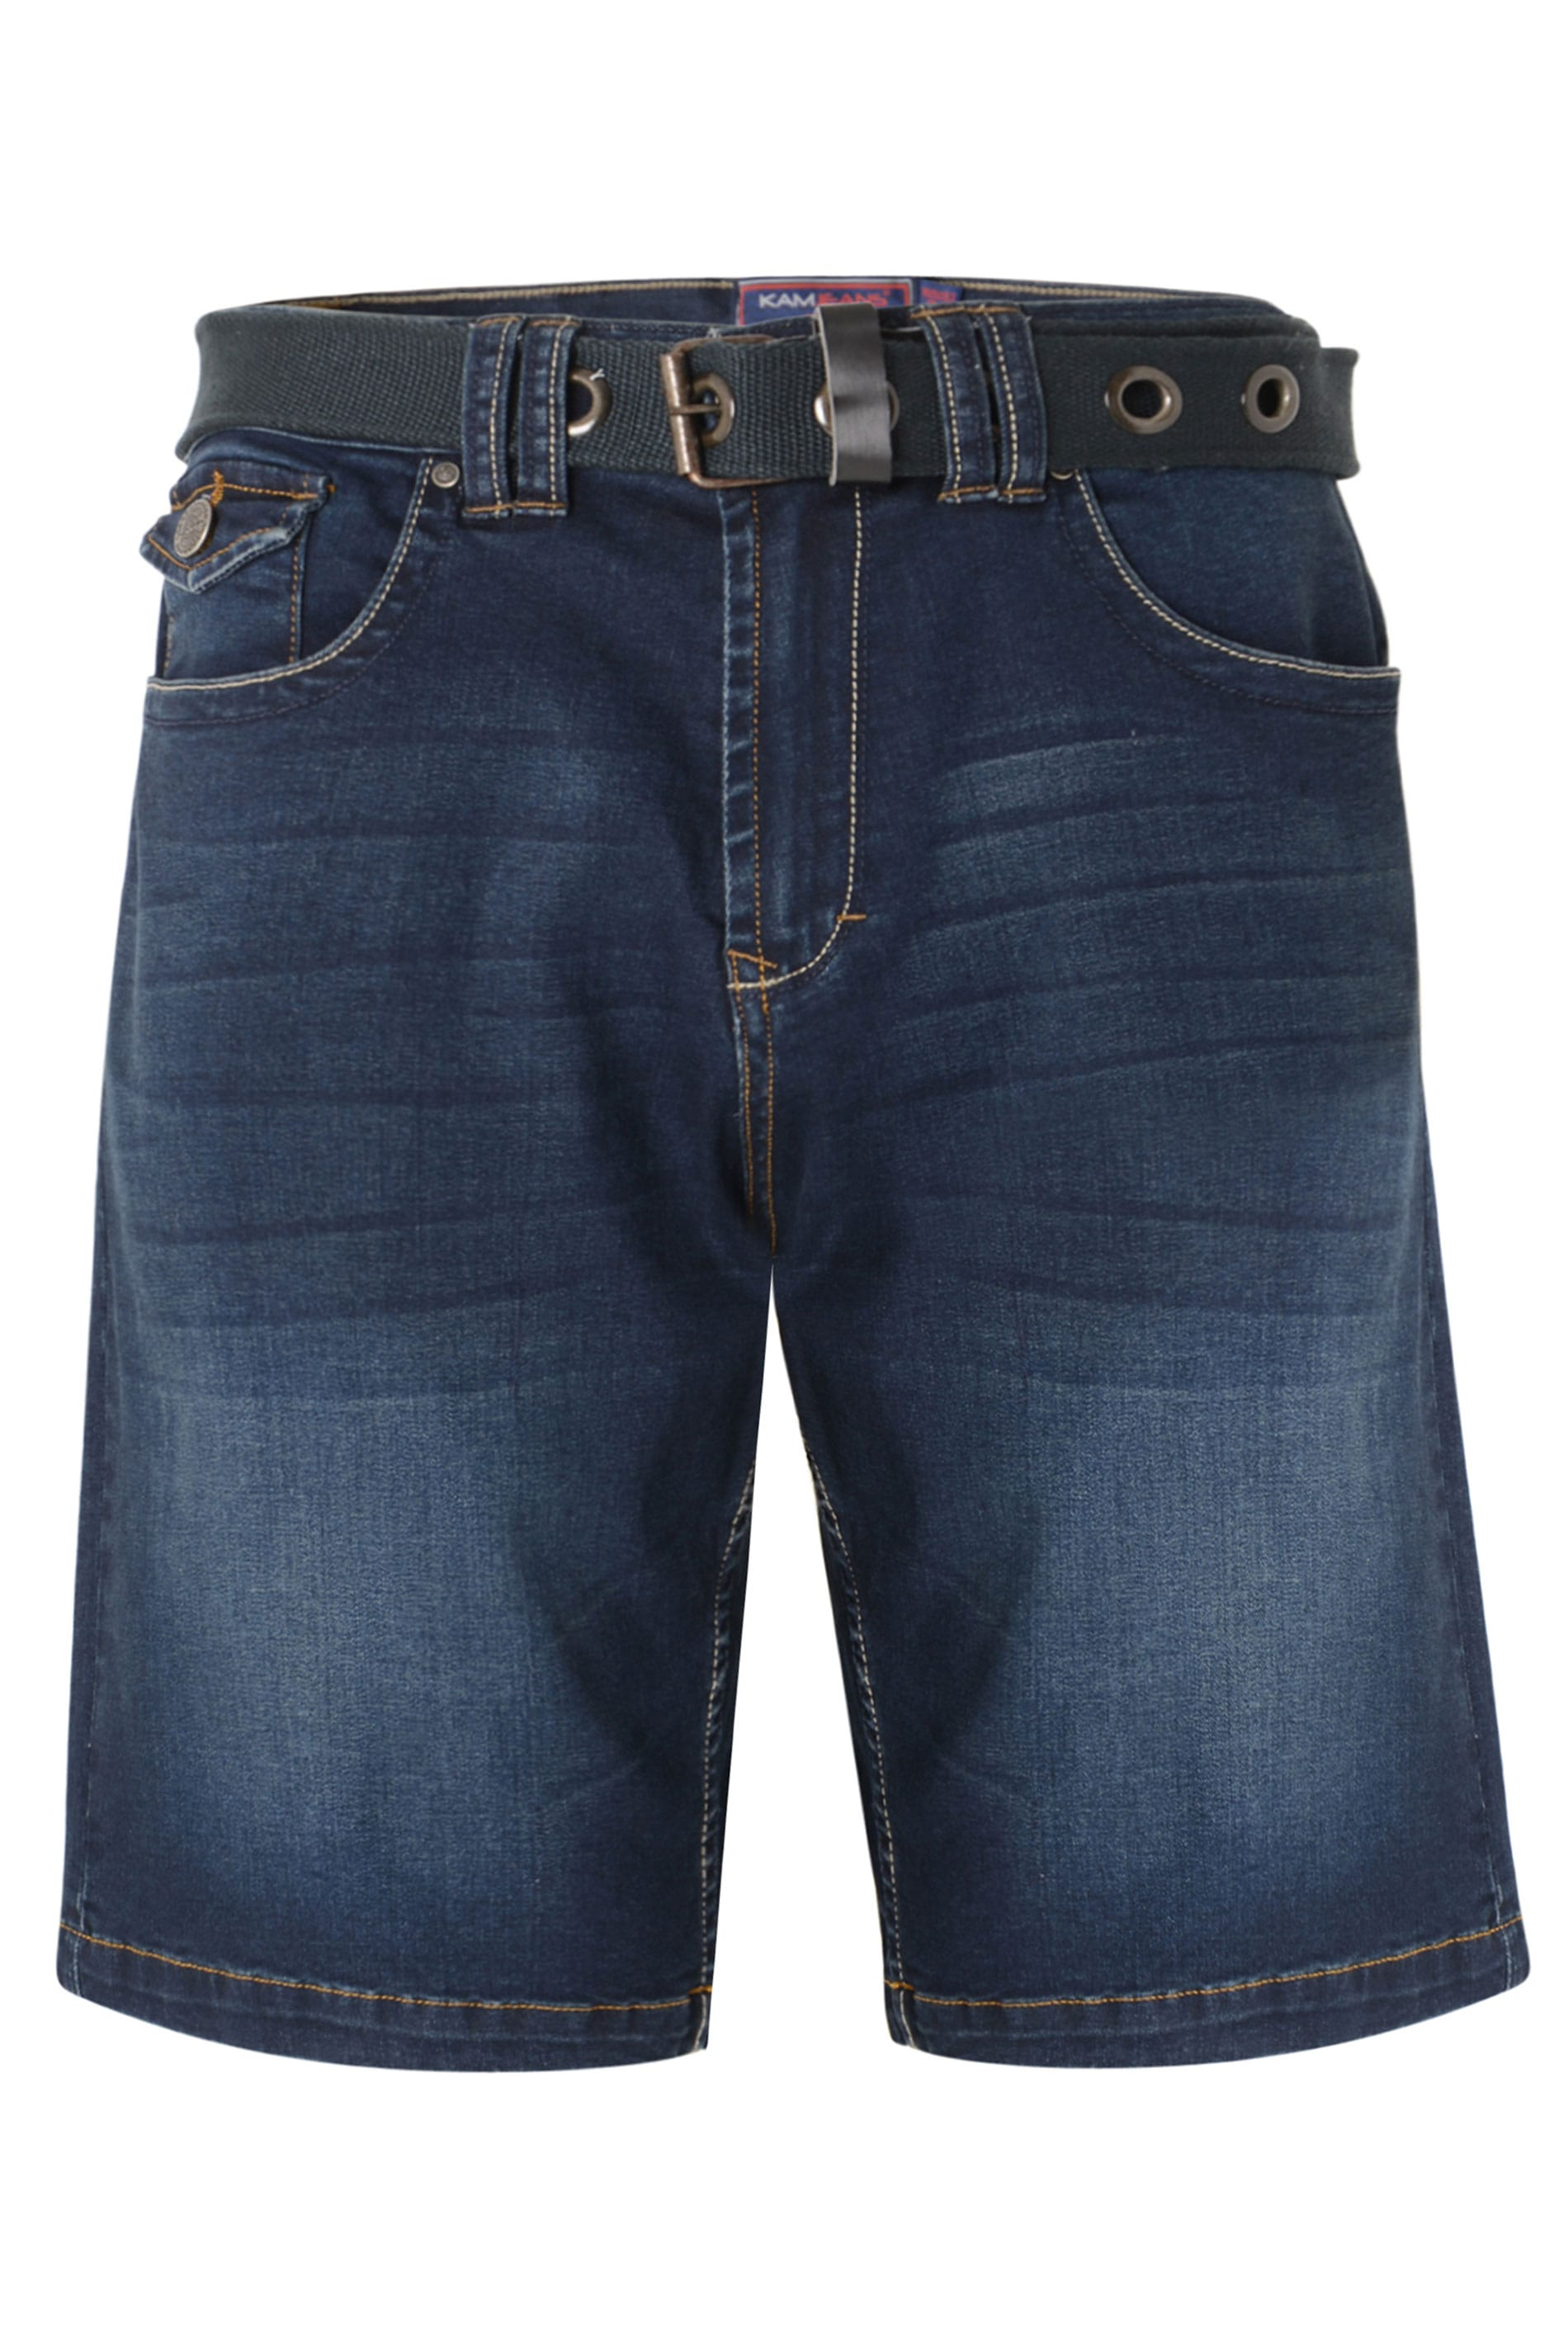 KAM Dark Blue Belted Denim Shorts